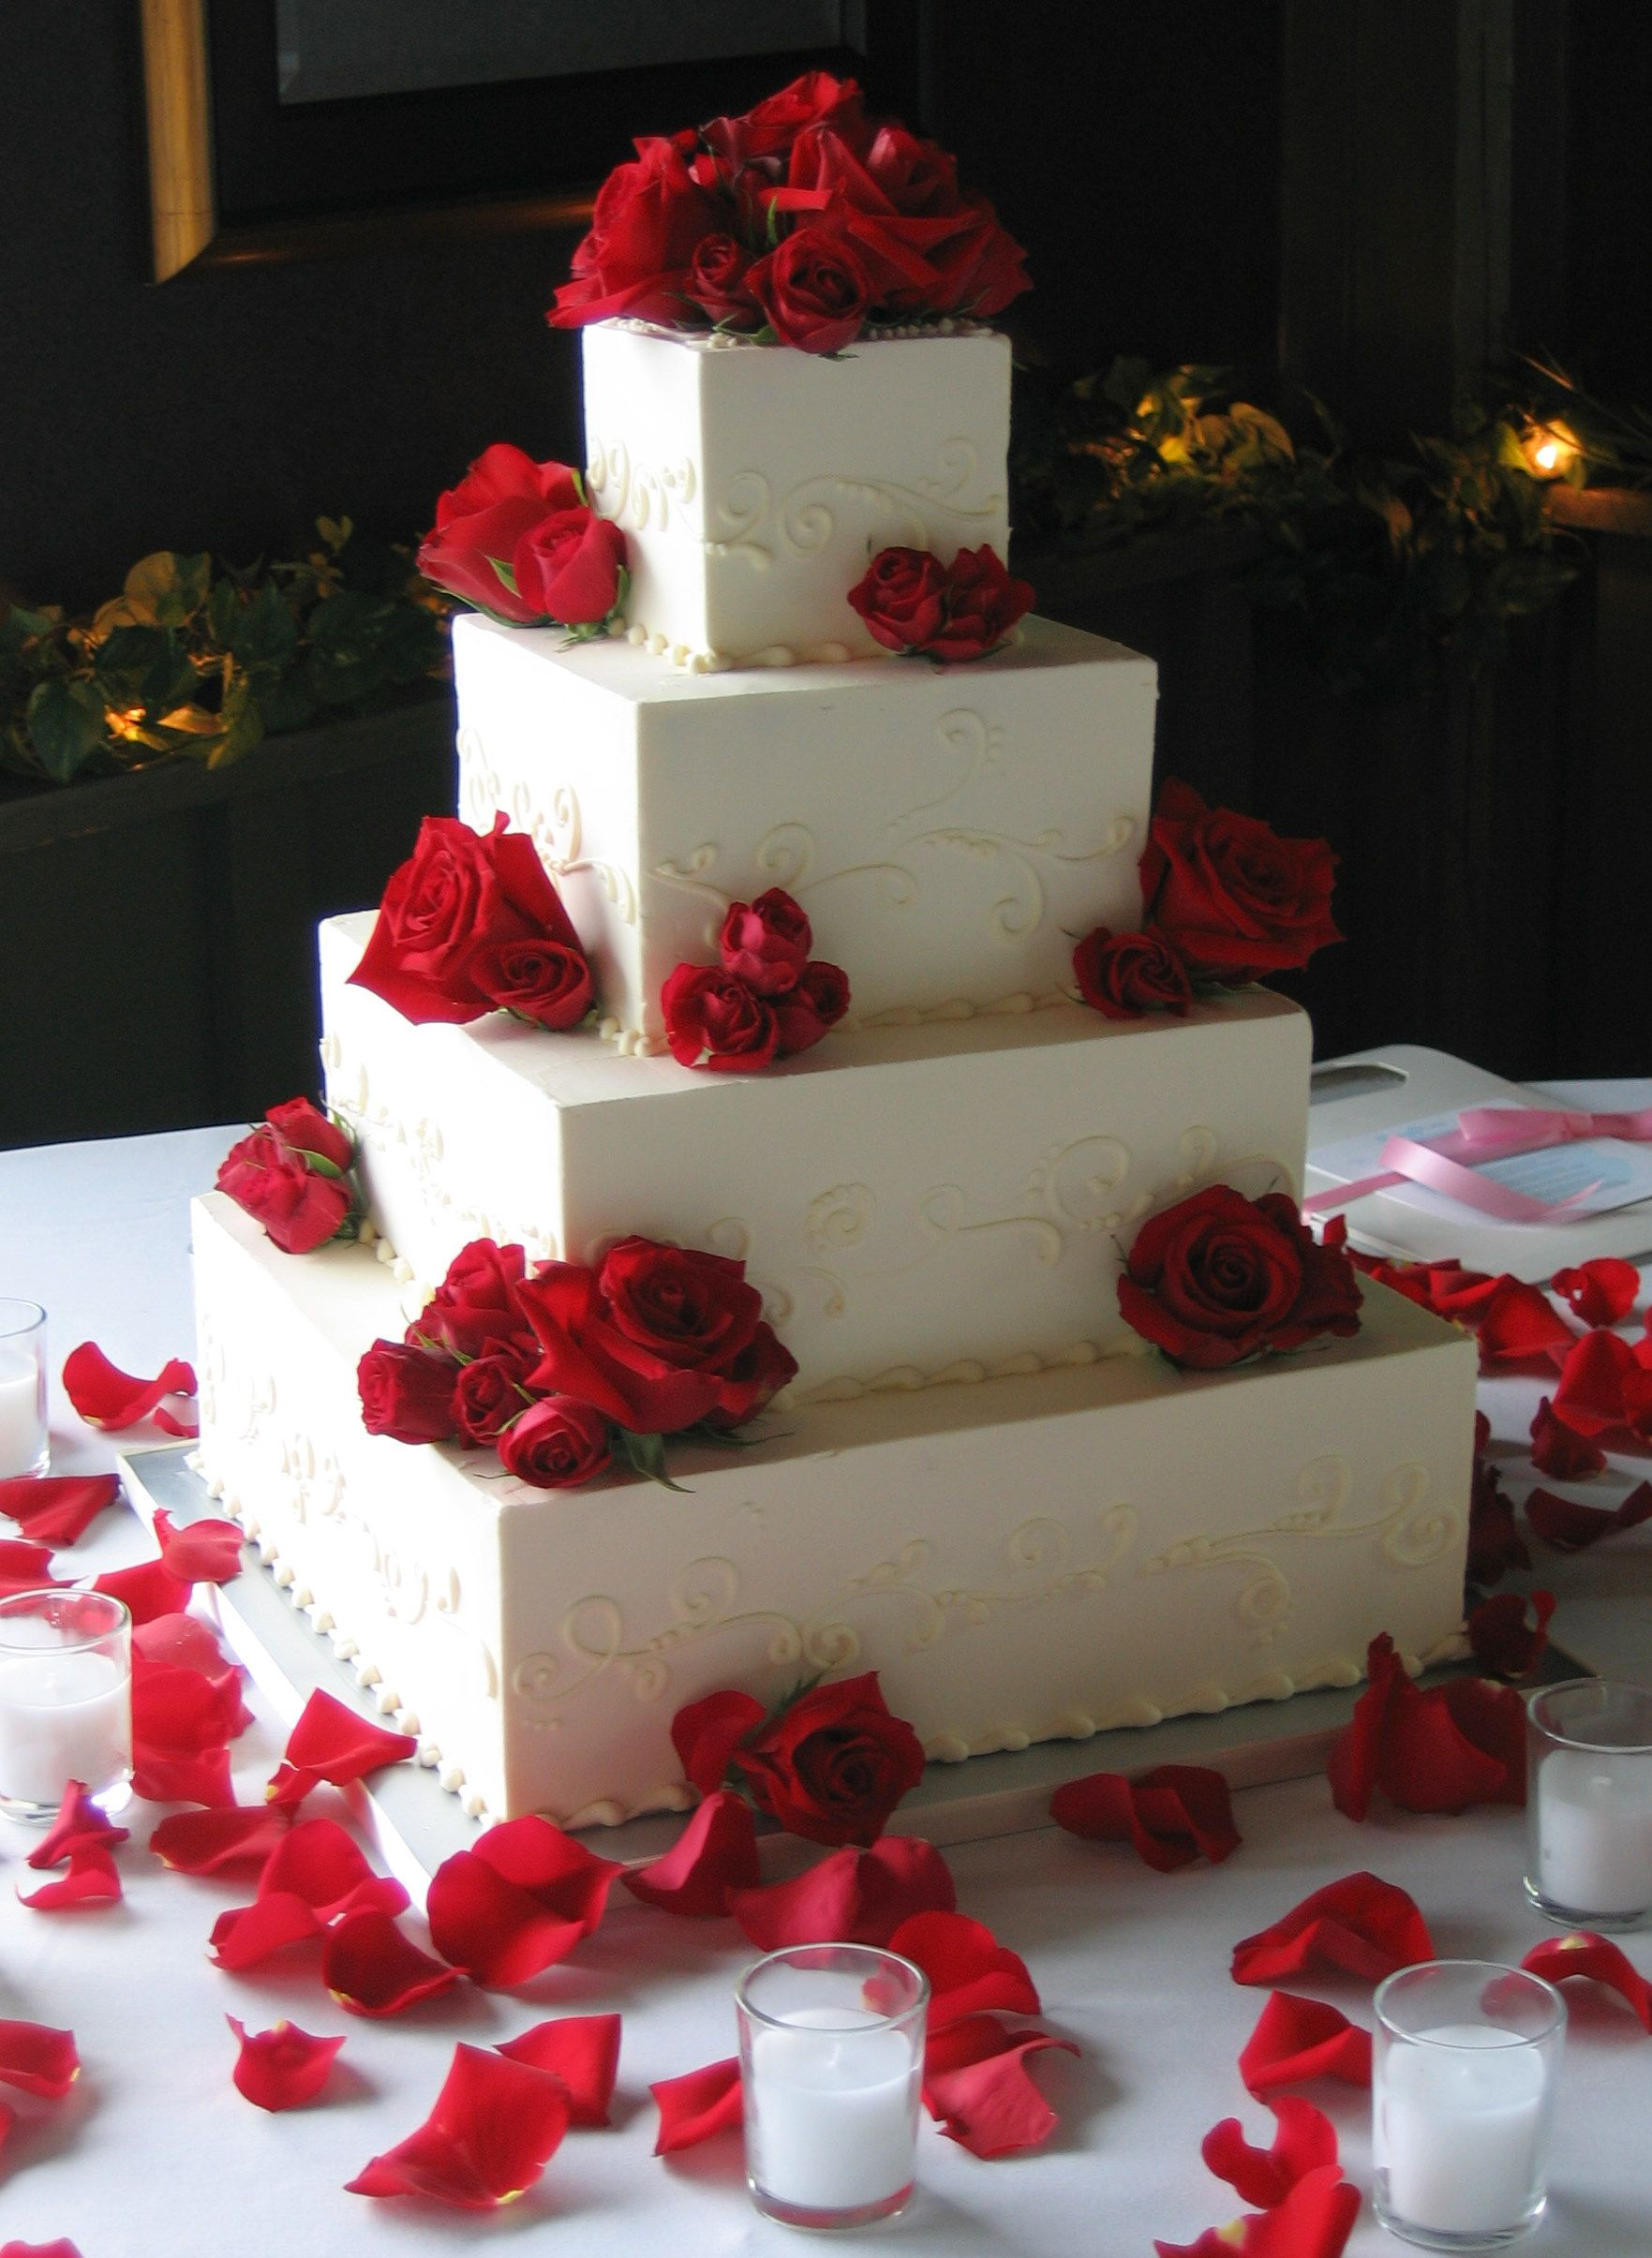 Magpies Bakery Knoxville  TN Square buttercream wedding cake adorned     Magpies Bakery Knoxville  TN Square buttercream wedding cake adorned with  fresh red roses   red  wedding  love  knoxville  weddingcake  rose